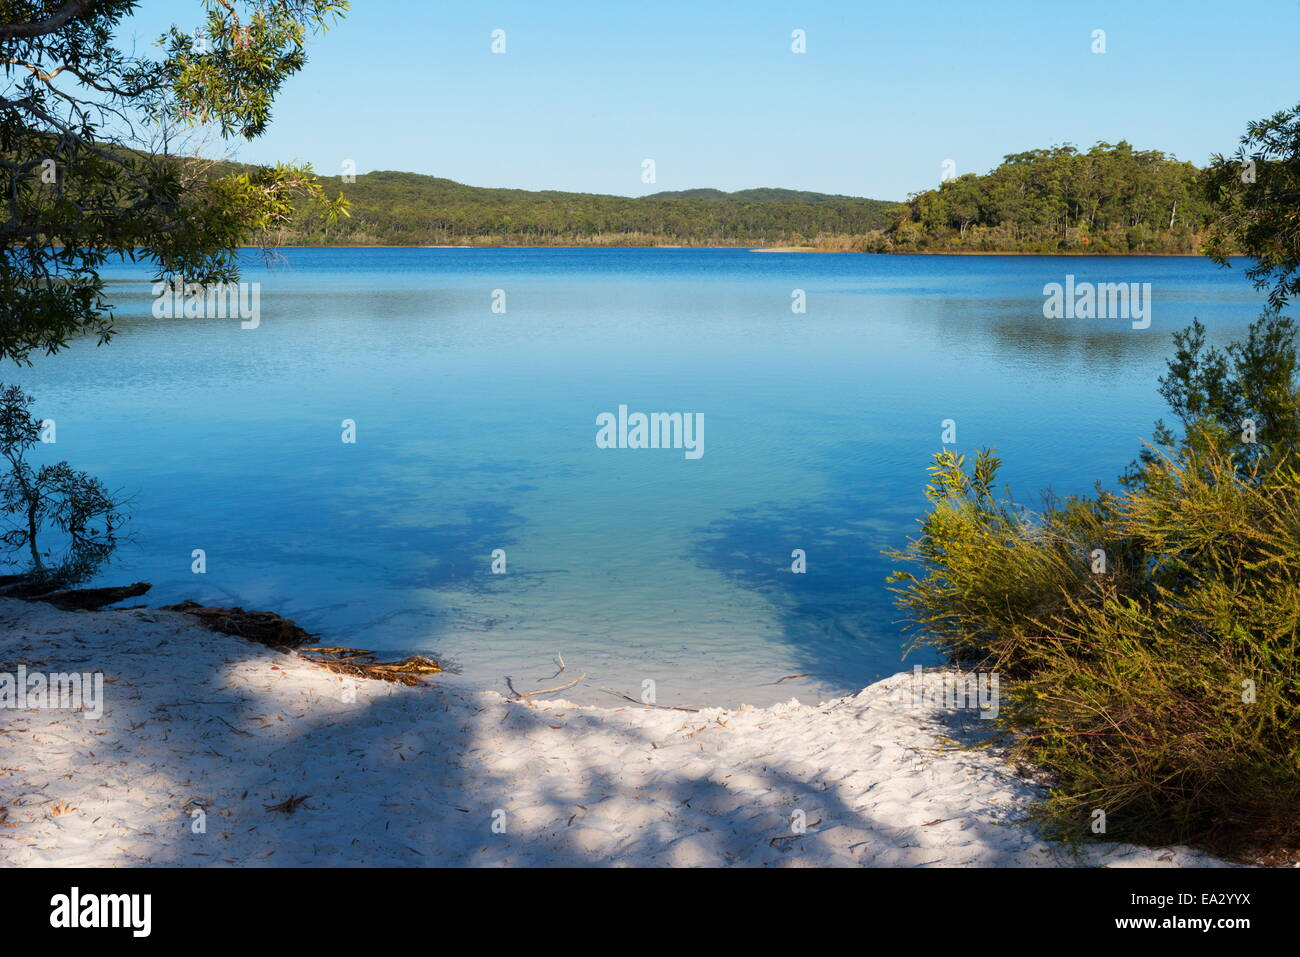 McKenzie Lake, Fraser Island, UNESCO World Heritage Site, Queensland, Australia, Pacific Stock Photo